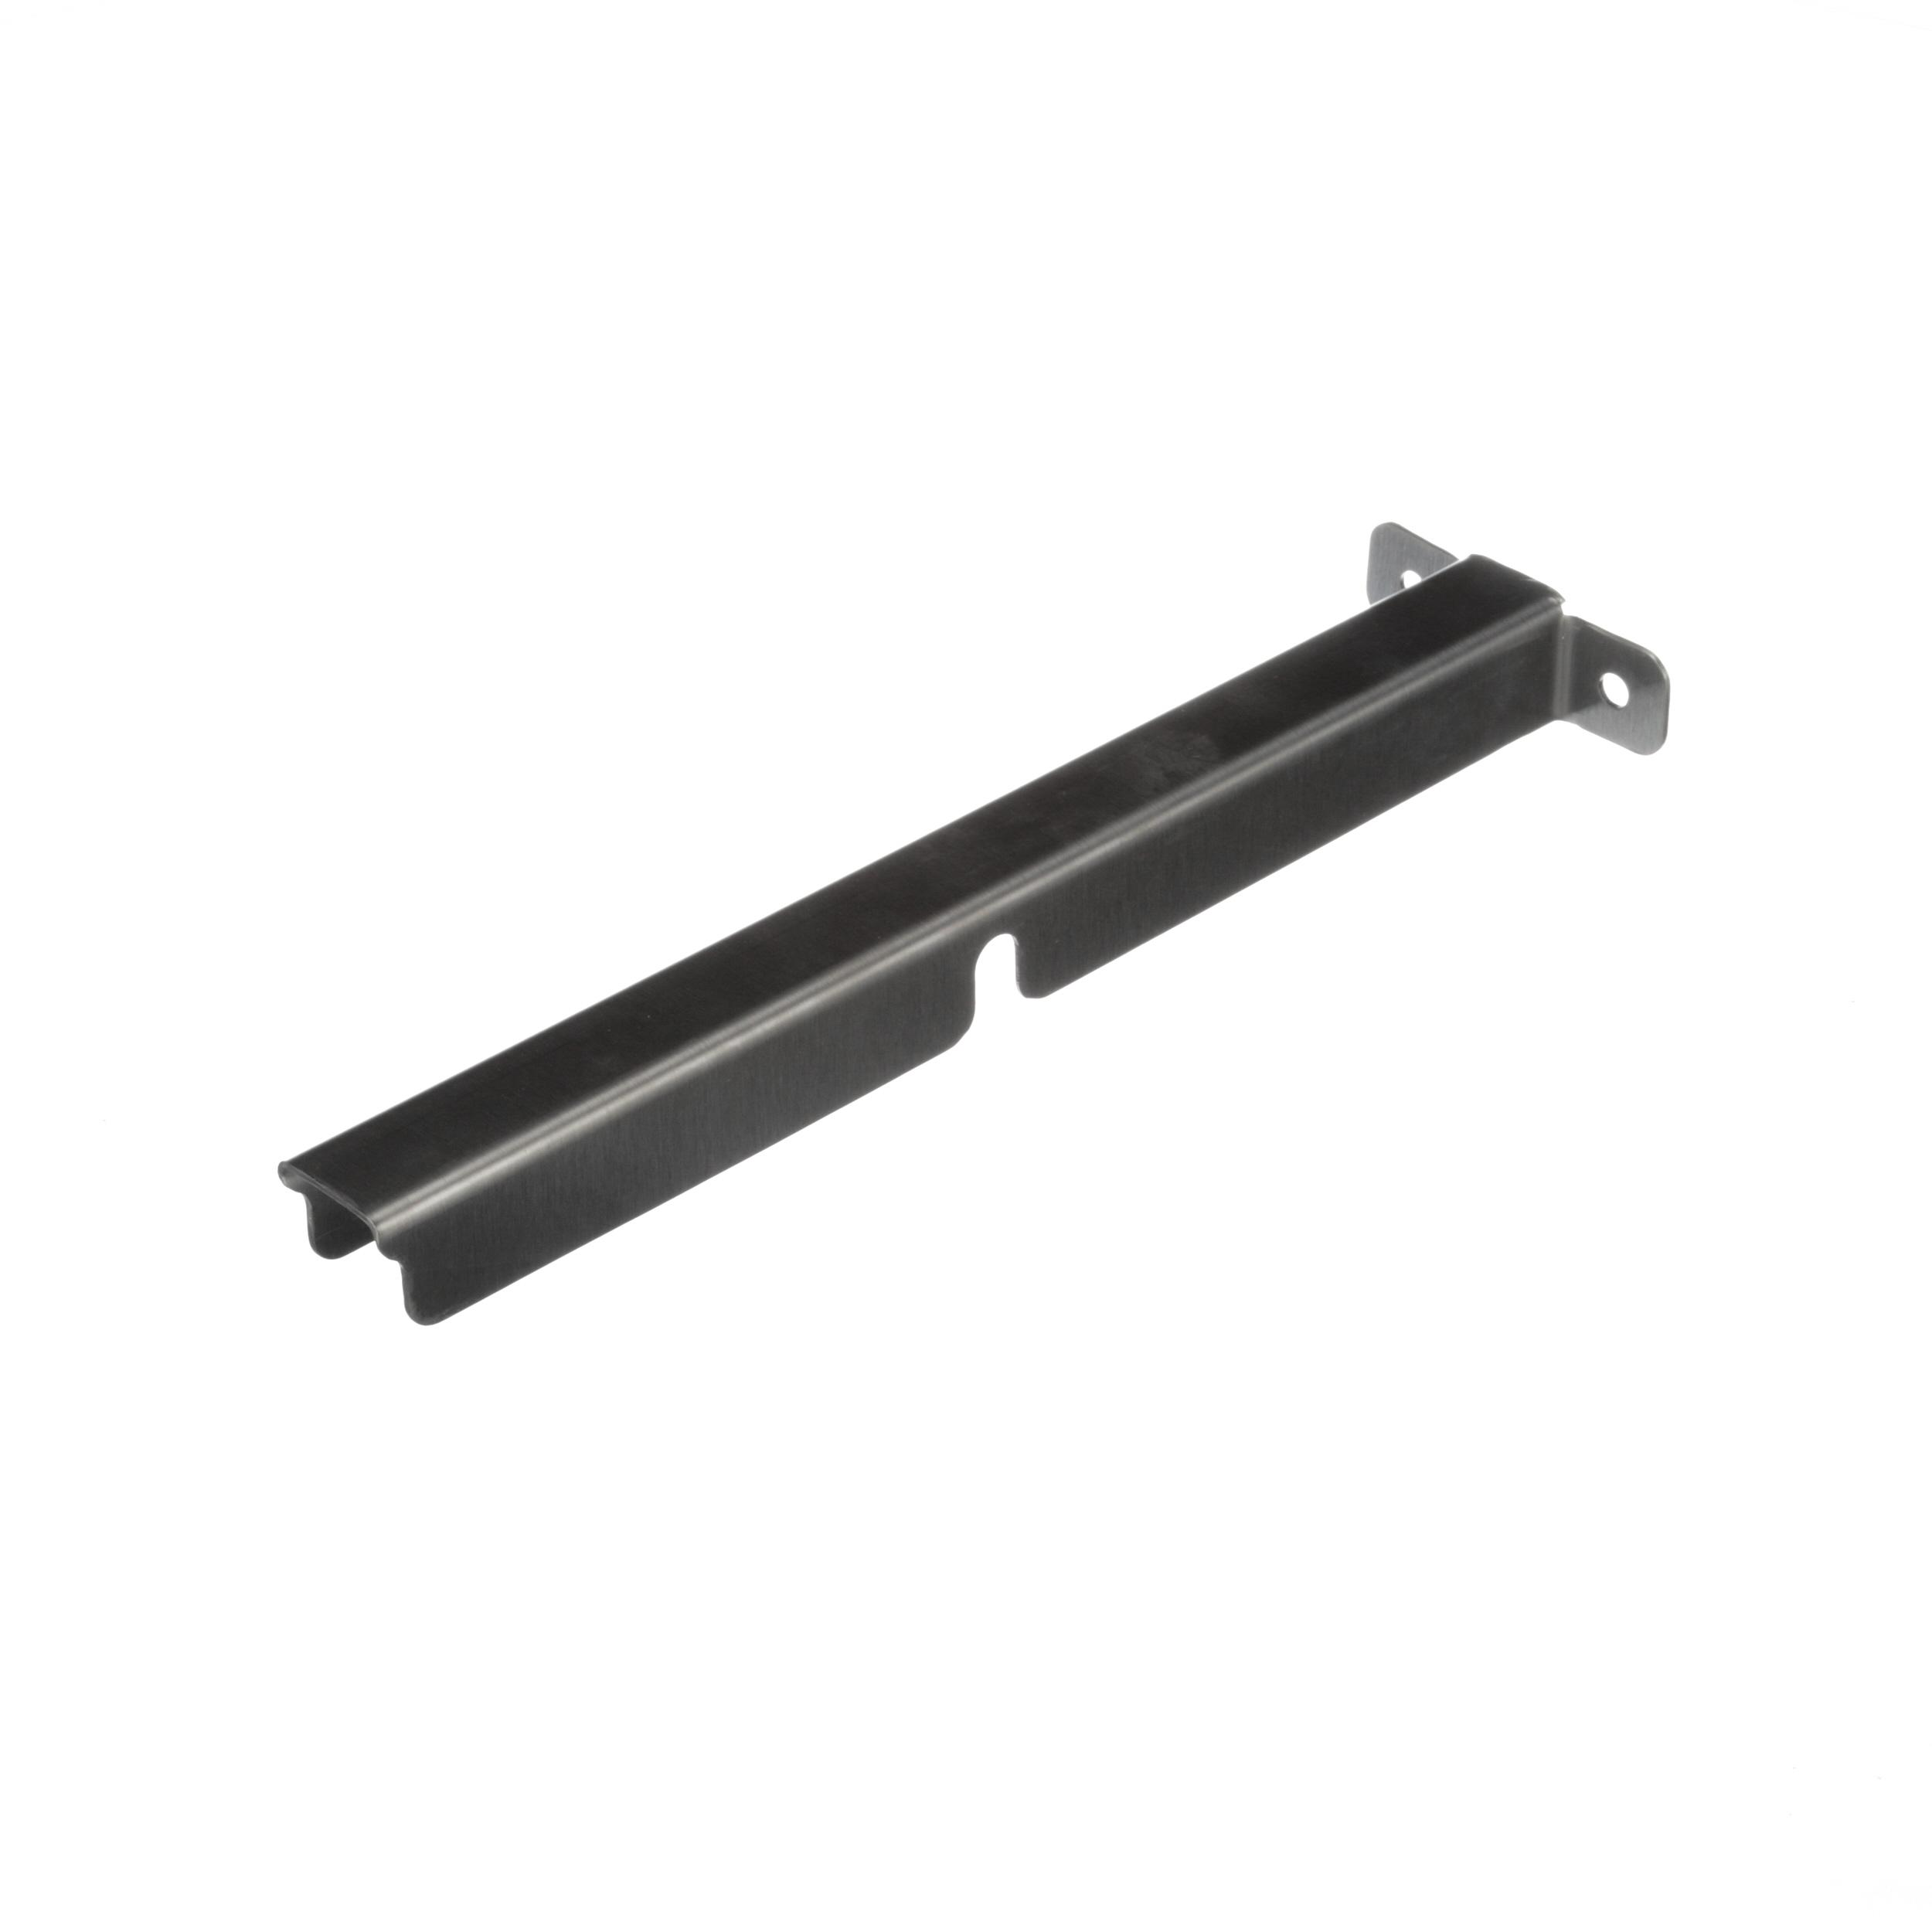 RANDELL SHELF SUPPORT, VERTICAL FOR 42000A